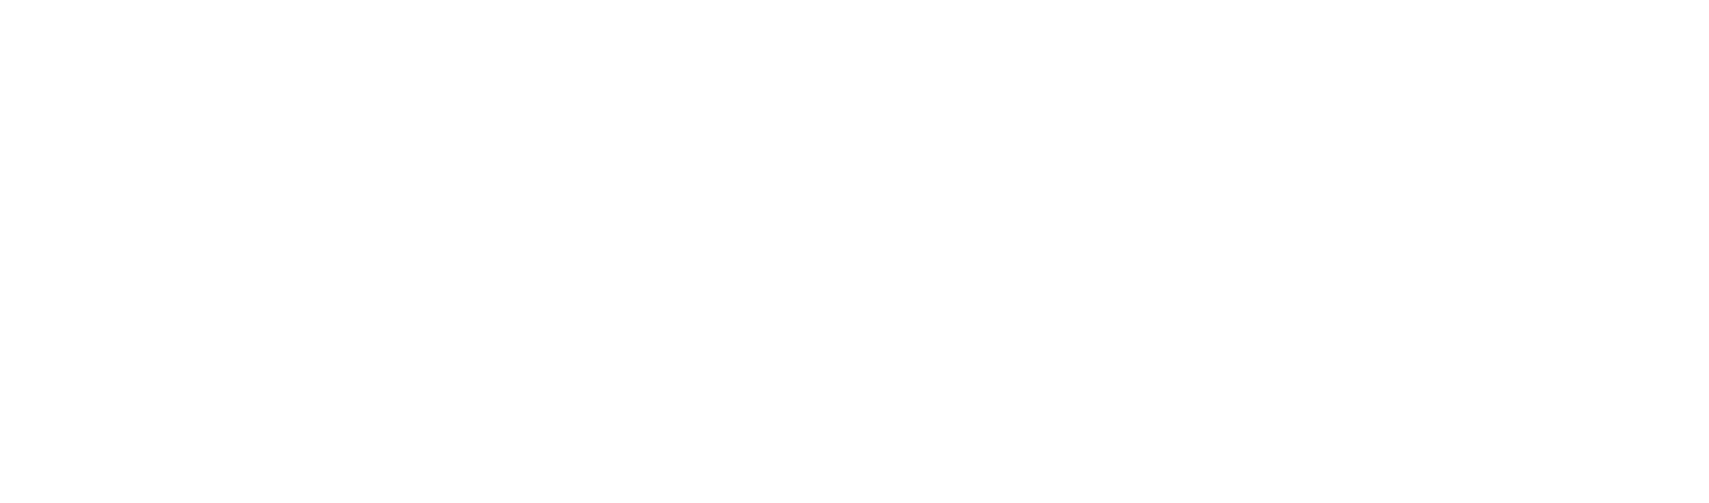 Logotipo de We connect you win